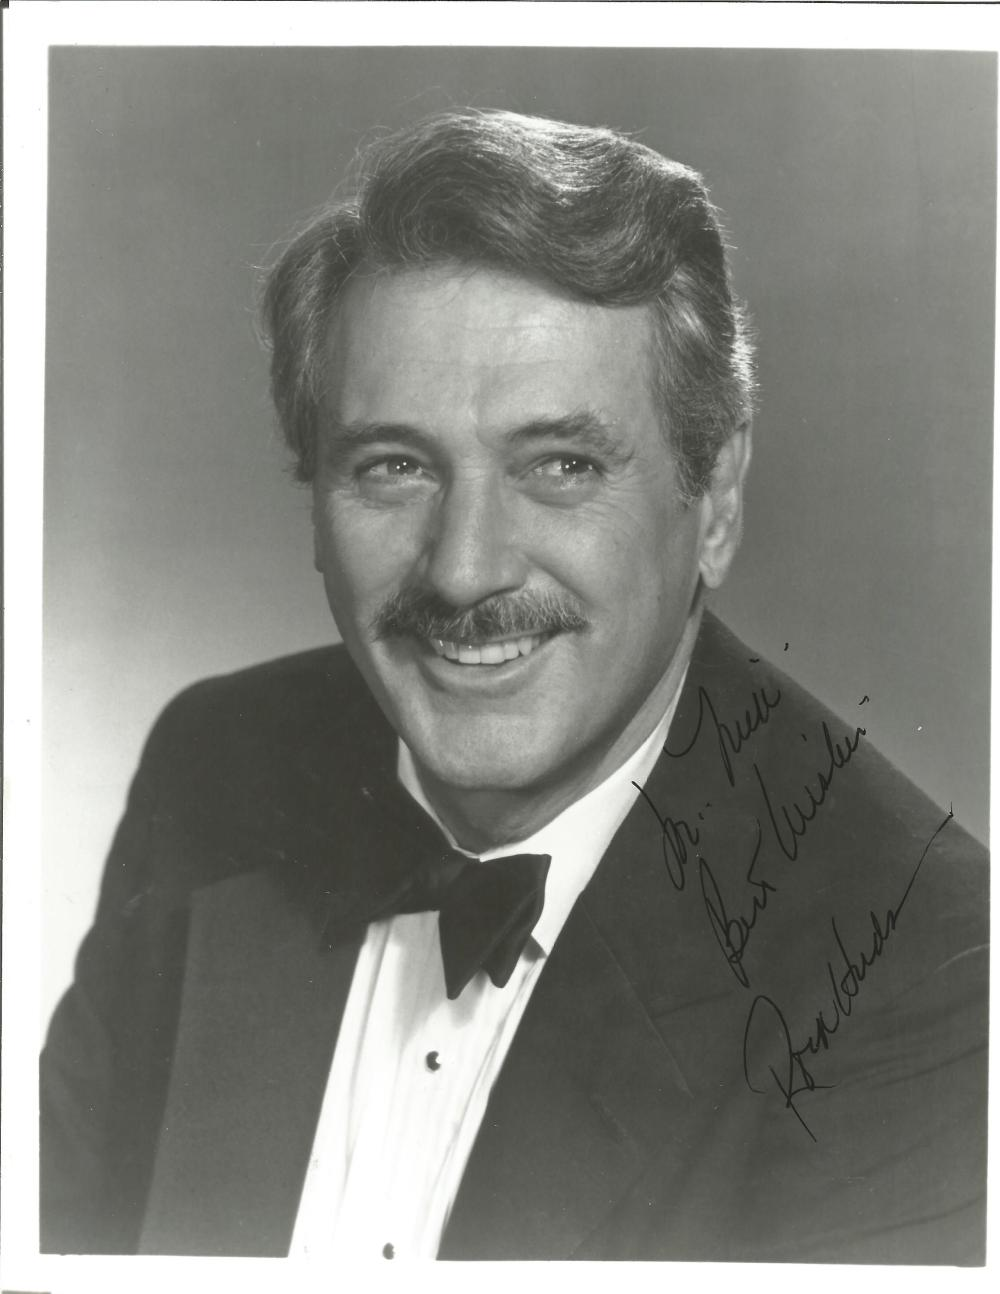 Rock Hudson signed 10x8 b/w photo. November 17, 1925 - October 2, 1985) was an American actor,